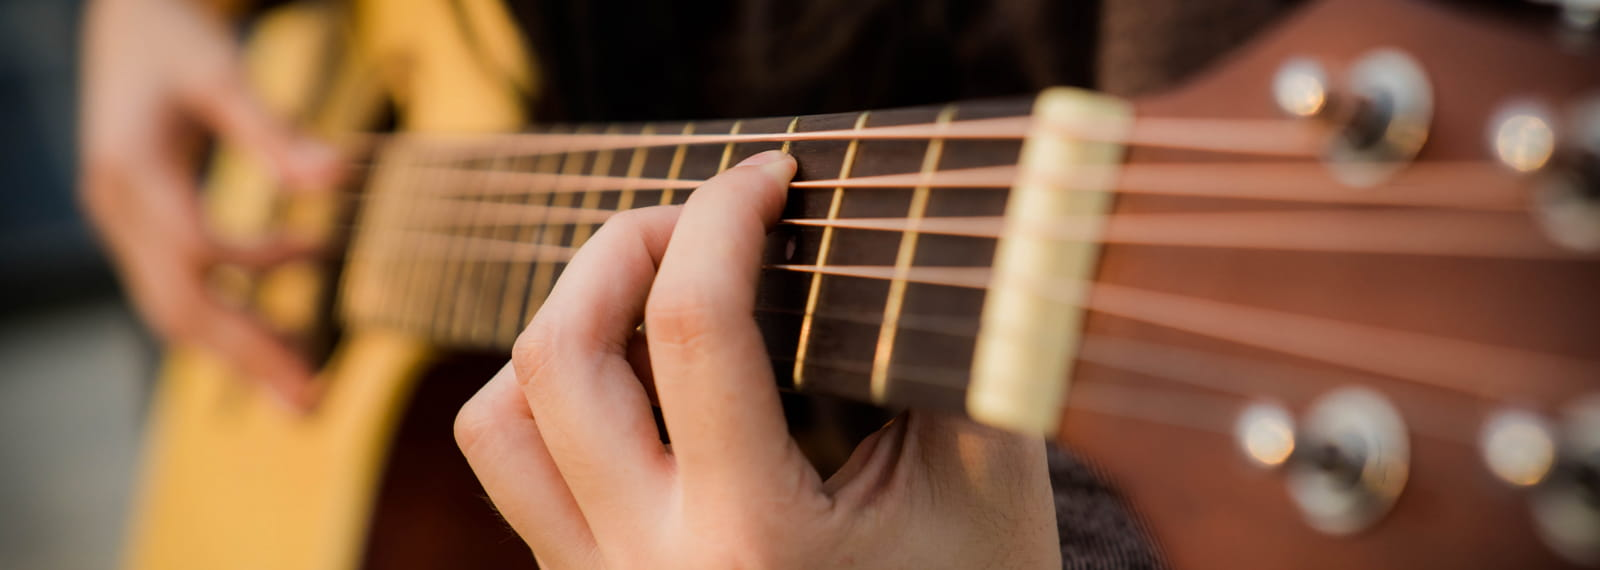 person-playing-guitar-2118045